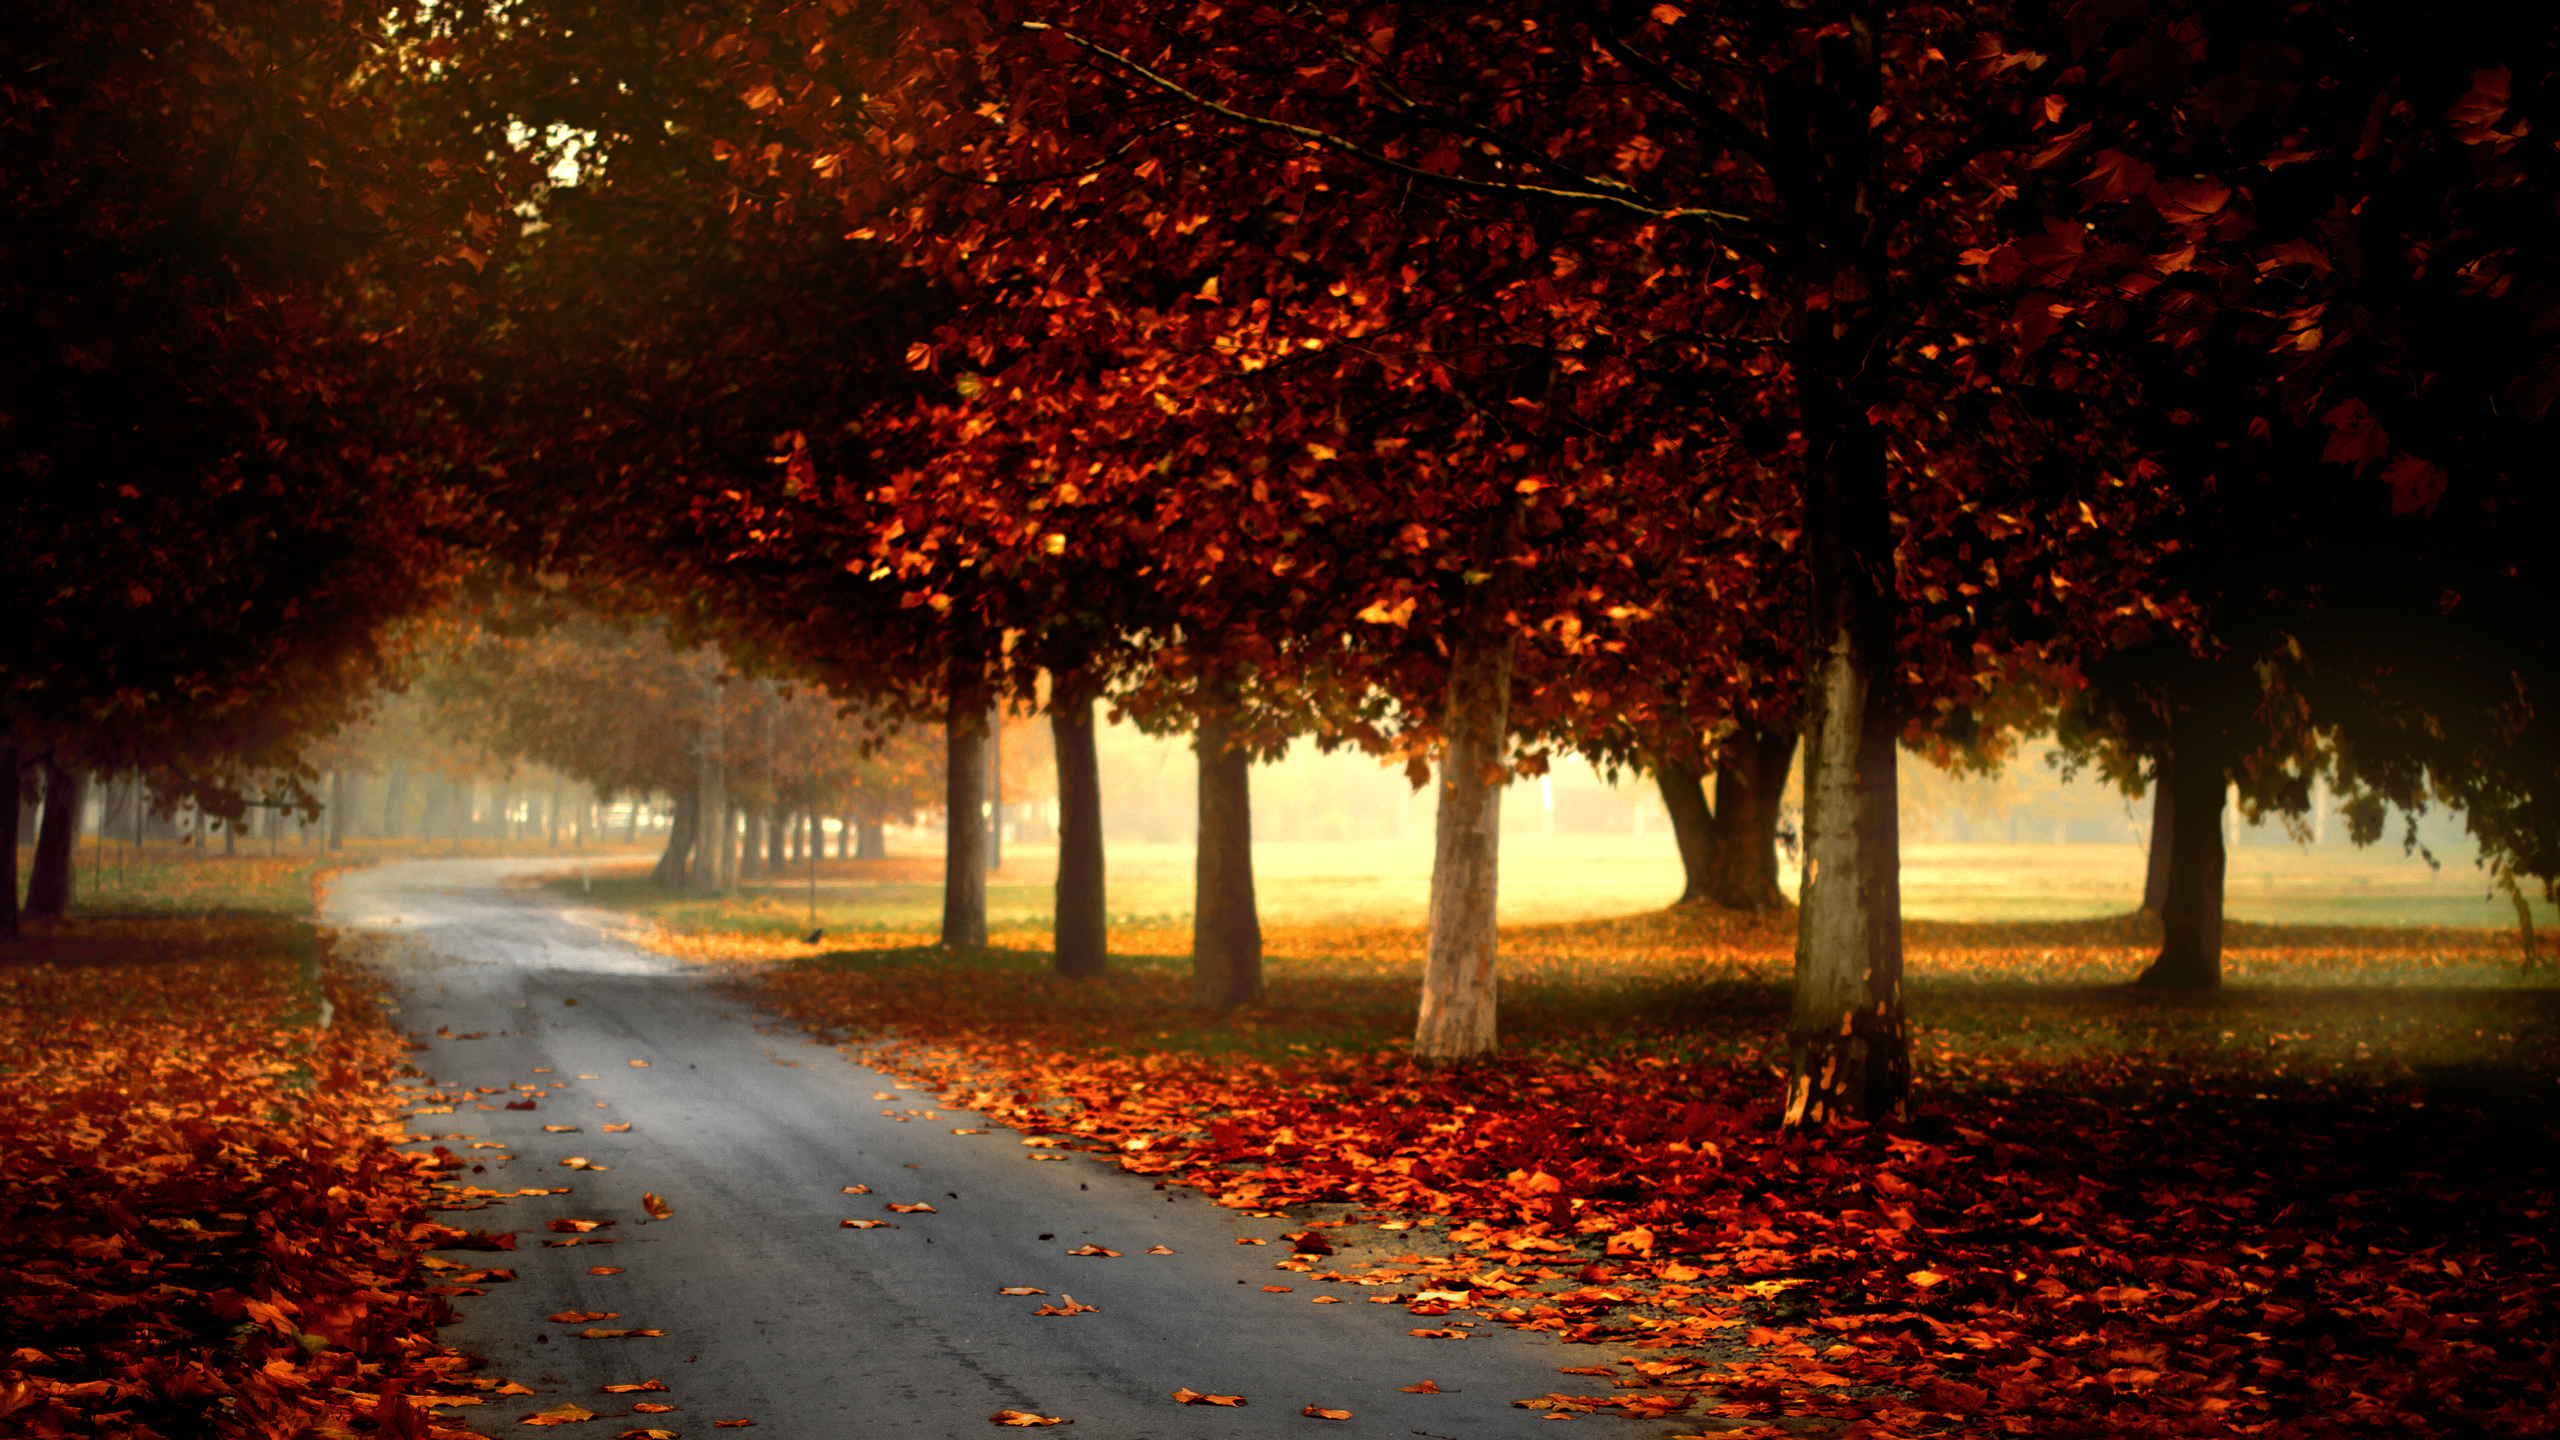 Fall Hd Wallpaper Background Image 2560x1440 Id 180803 Wallpaper Abyss